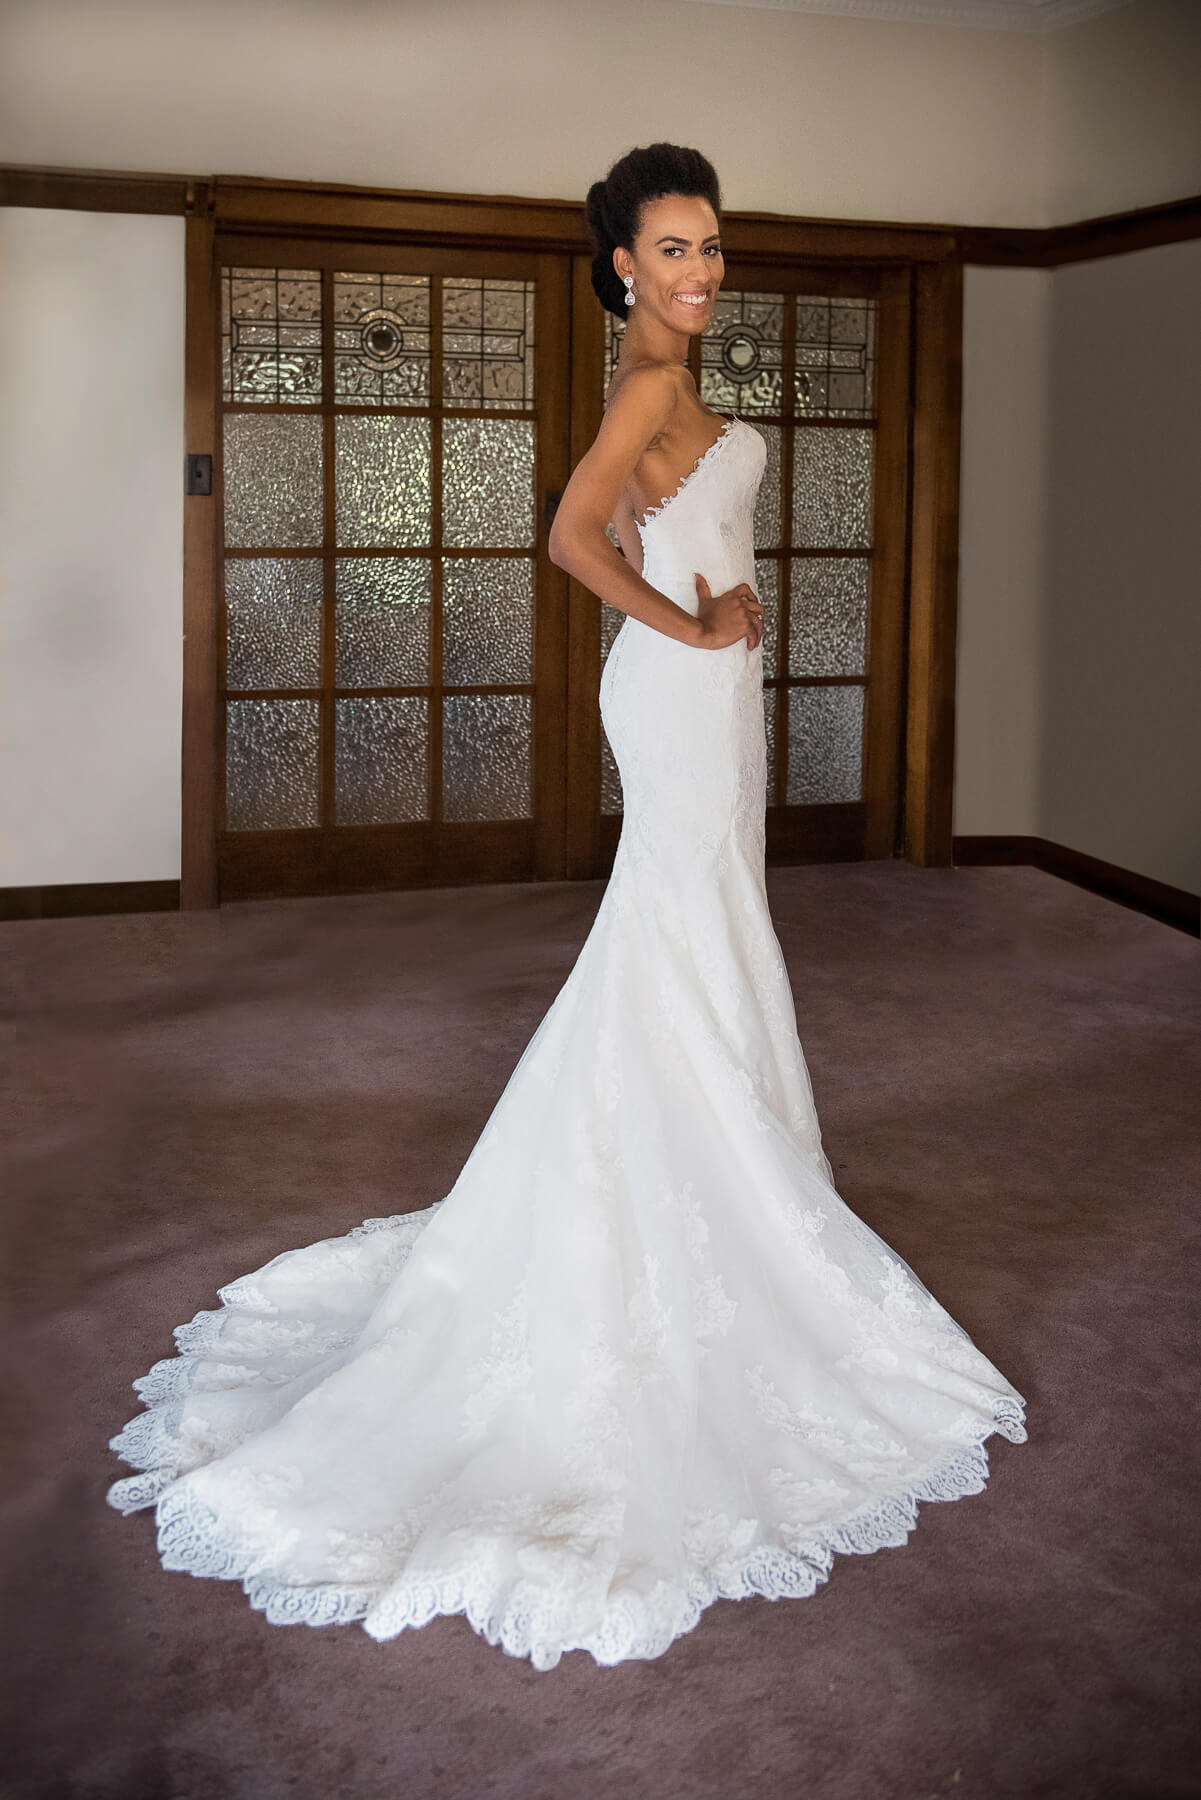 Pronovias – Size 8 Fishtail dress | Second hand wedding dresses Woy Woy - Size 8